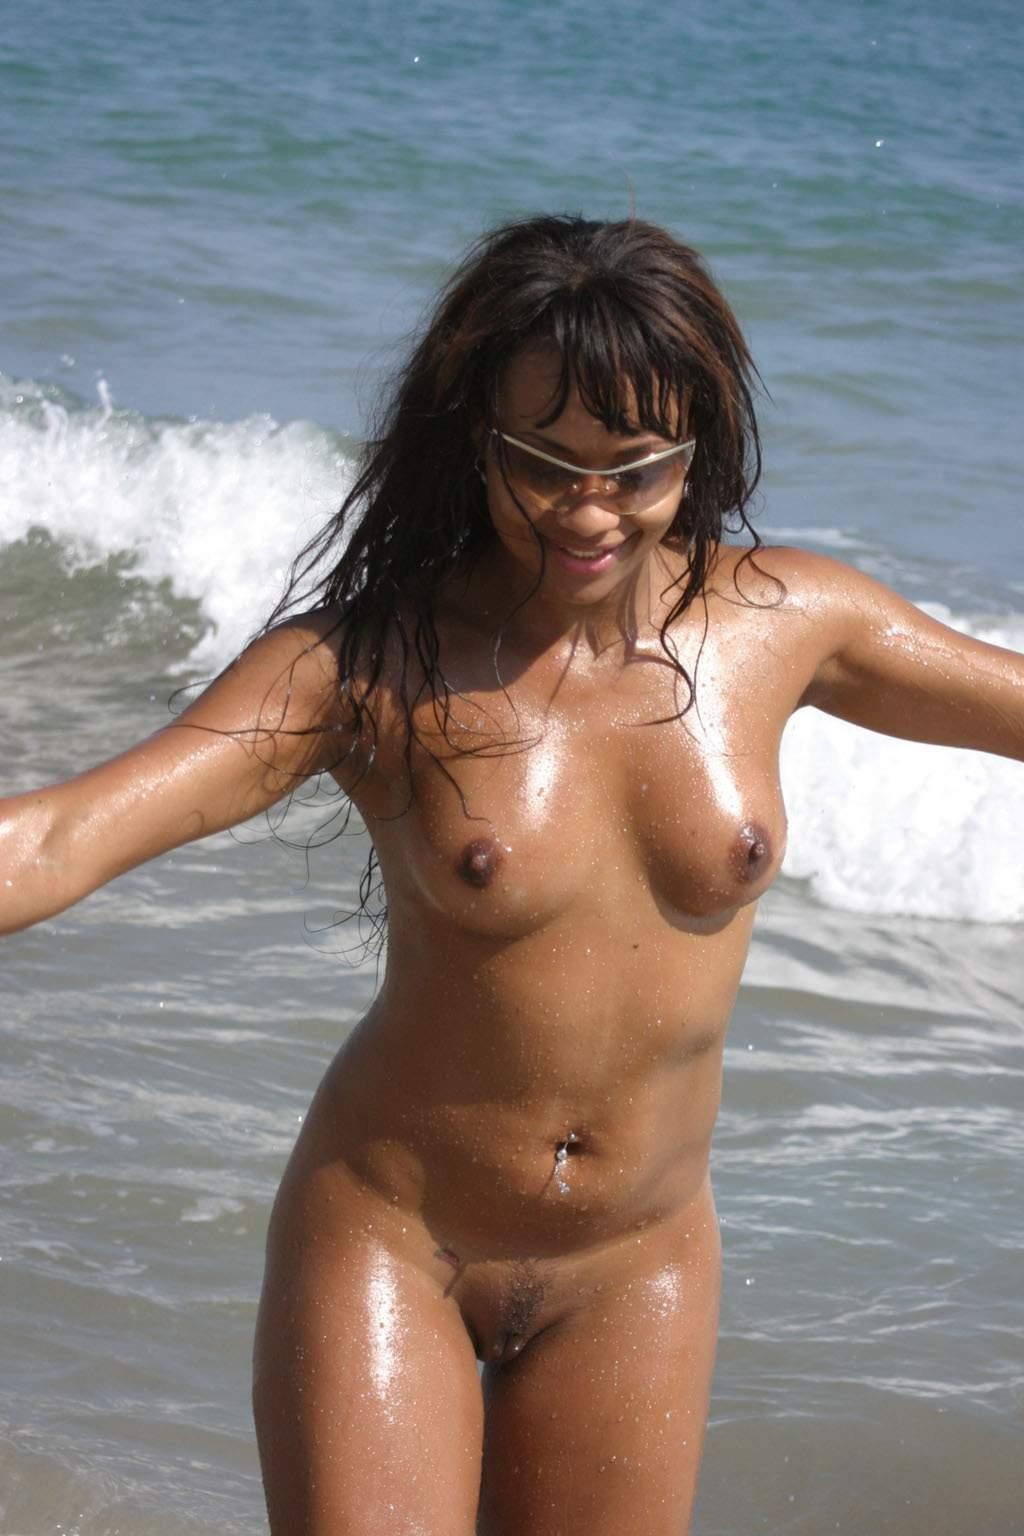 Naked hot latina lavishing the affection of gentle sea breeze